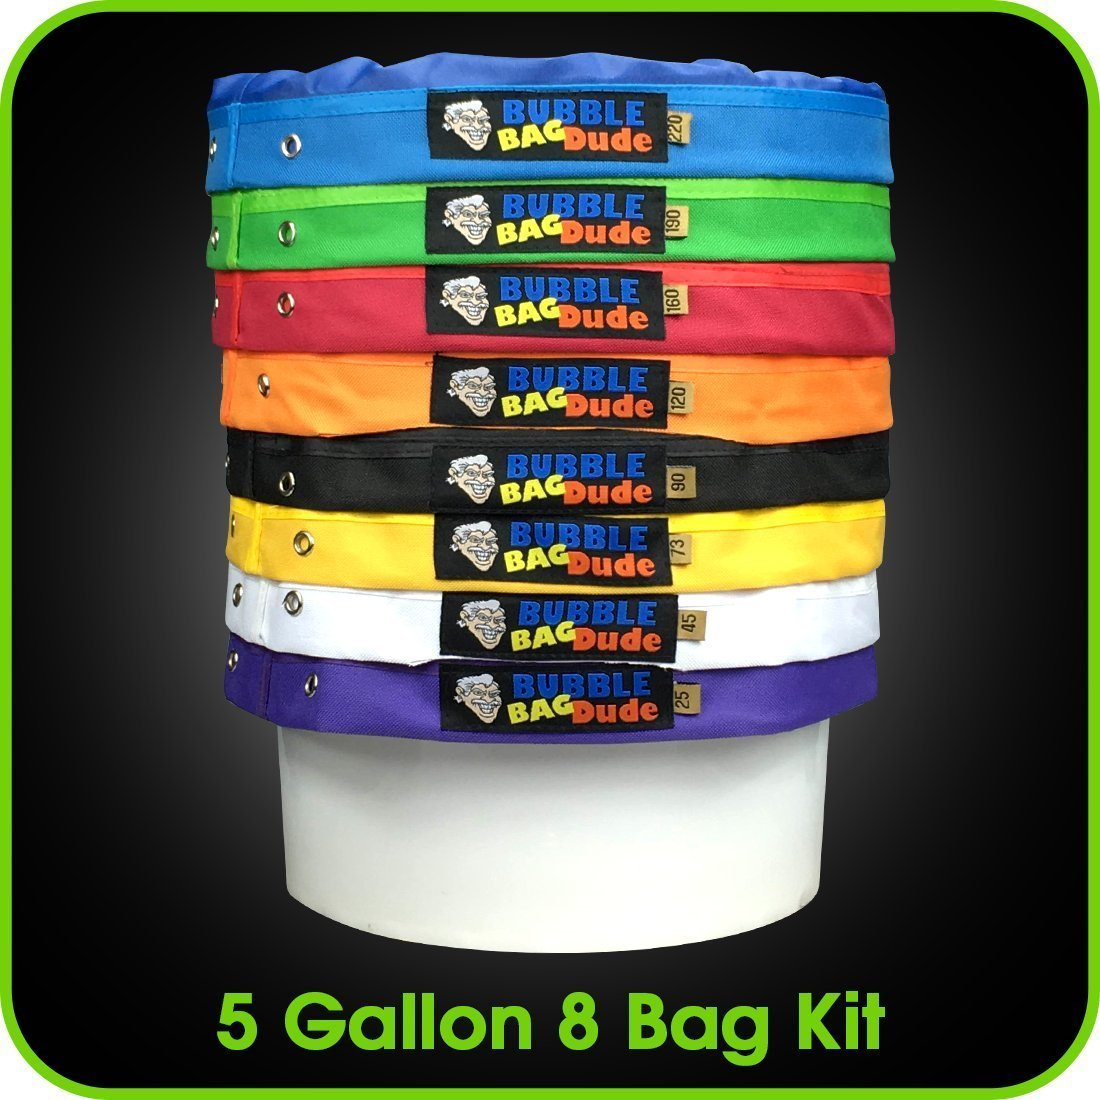 BUBBLEBAGDUDE Bubble Bags 5 Gallon 8 Bag Set - Herbal Ice Essence Extractor Bag Kit - Comes with Pressing Screen and Storage Bag David Wilson Inc.